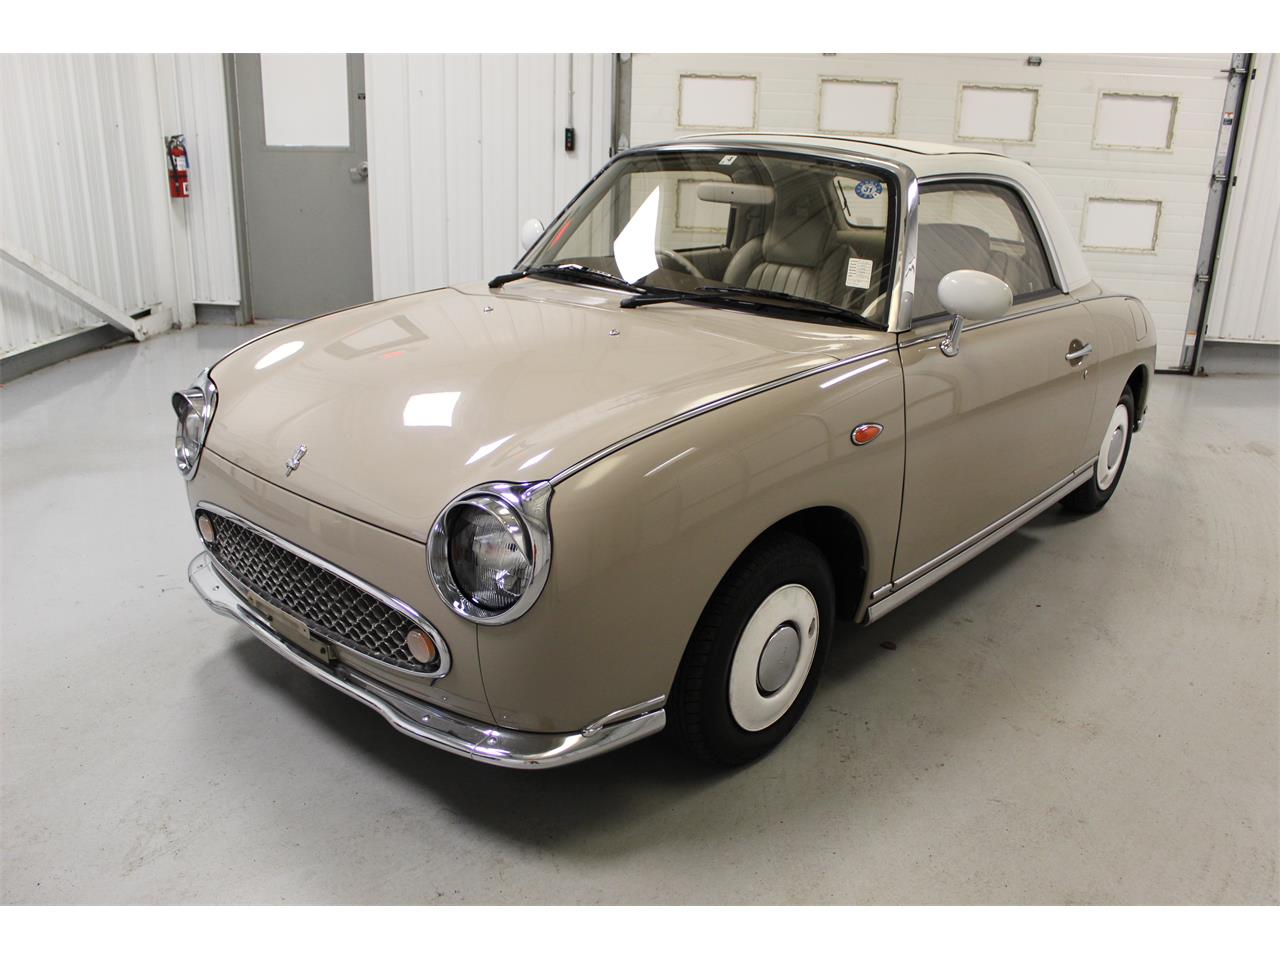 1991 Nissan Figaro for sale in Christiansburg, VA – photo 5